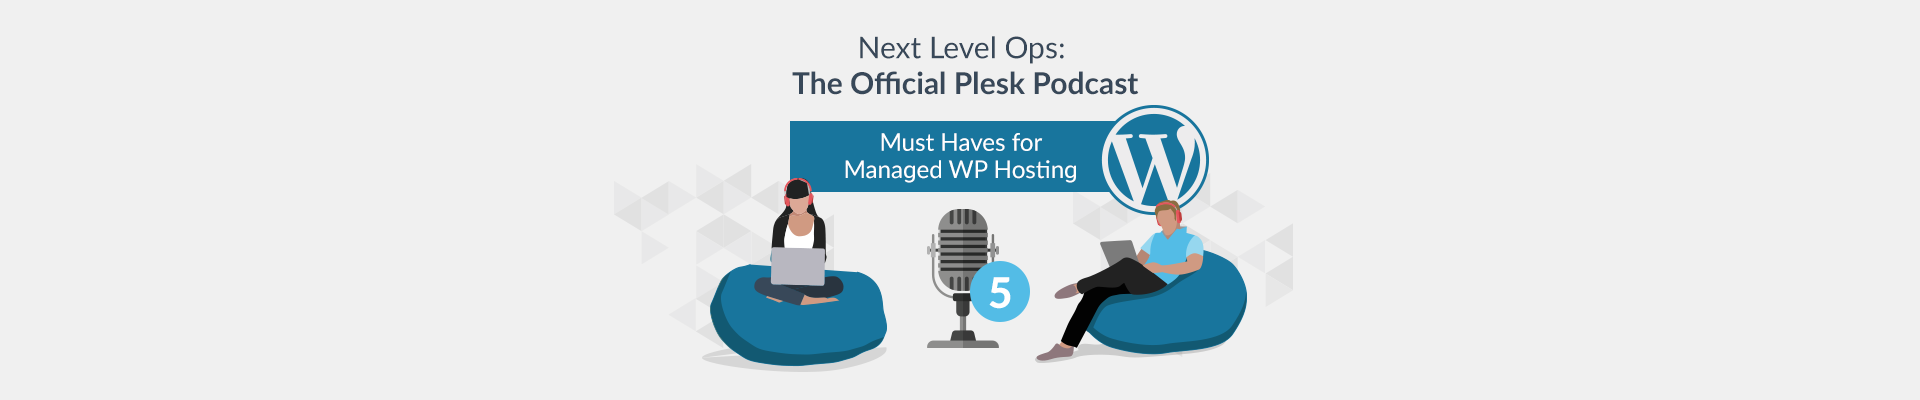 Next Level Ops Podcast: Must Haves for Managed WordPress Hosting with Andrey Kugaevskiy - Plesk